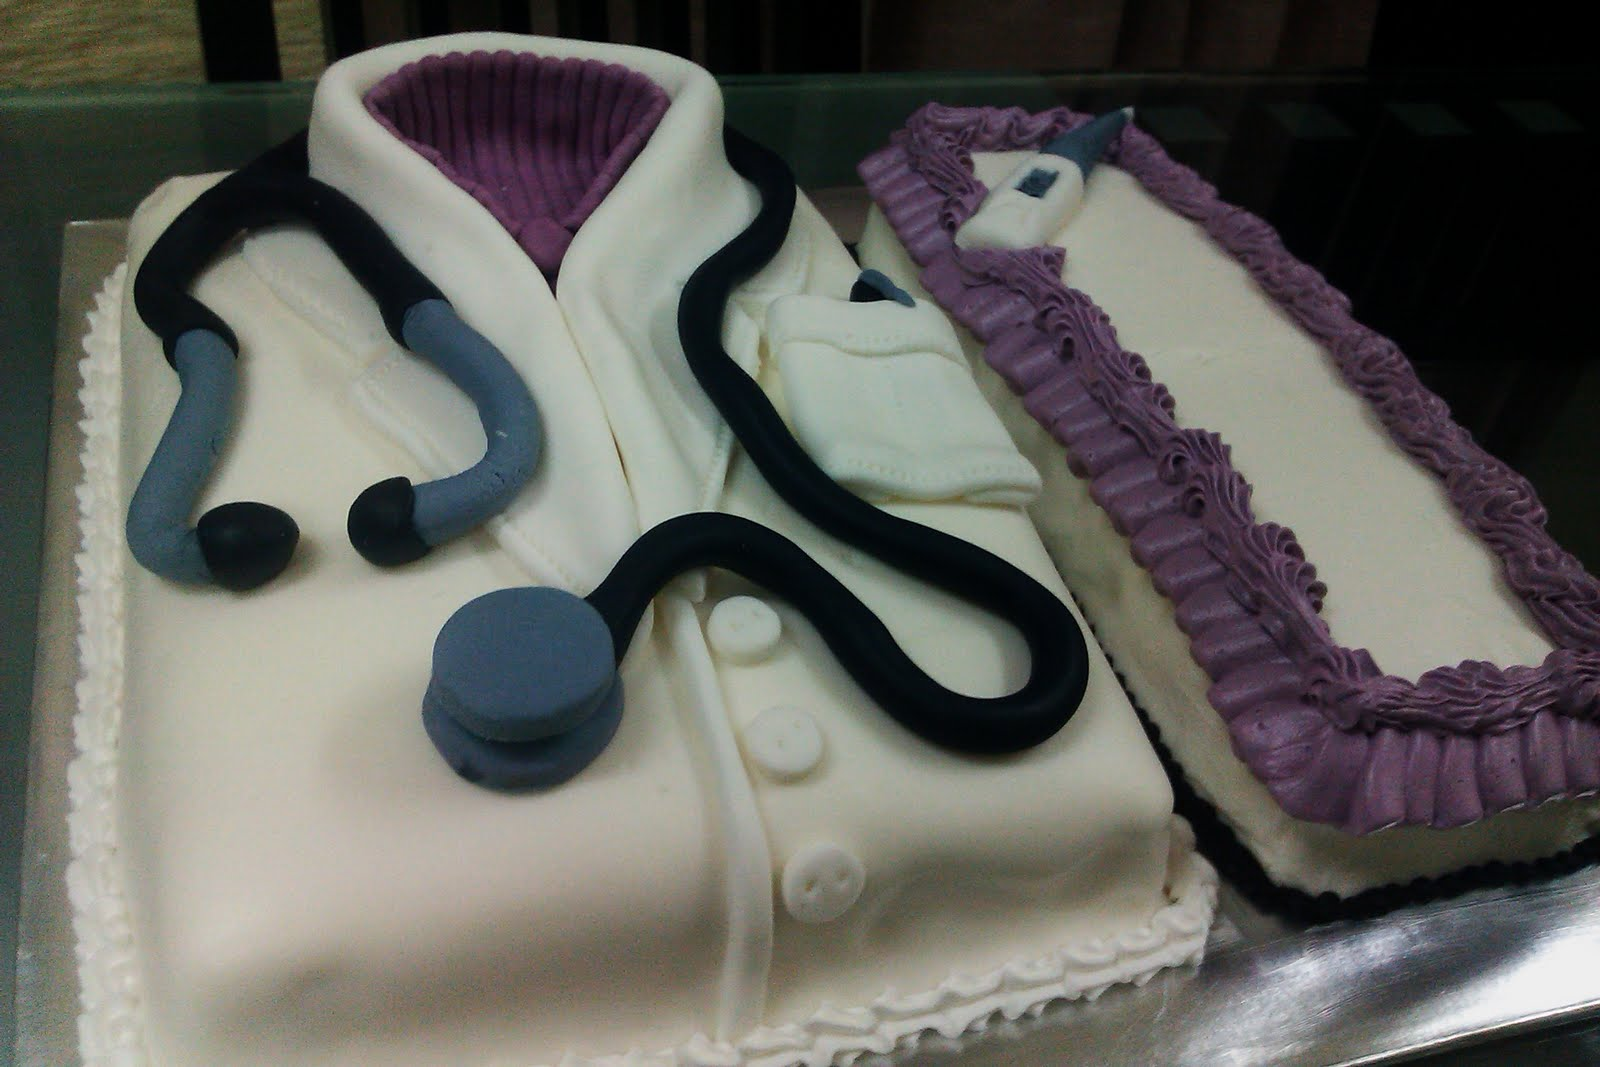 AniesBakeHouse 3D My Doctor Cake